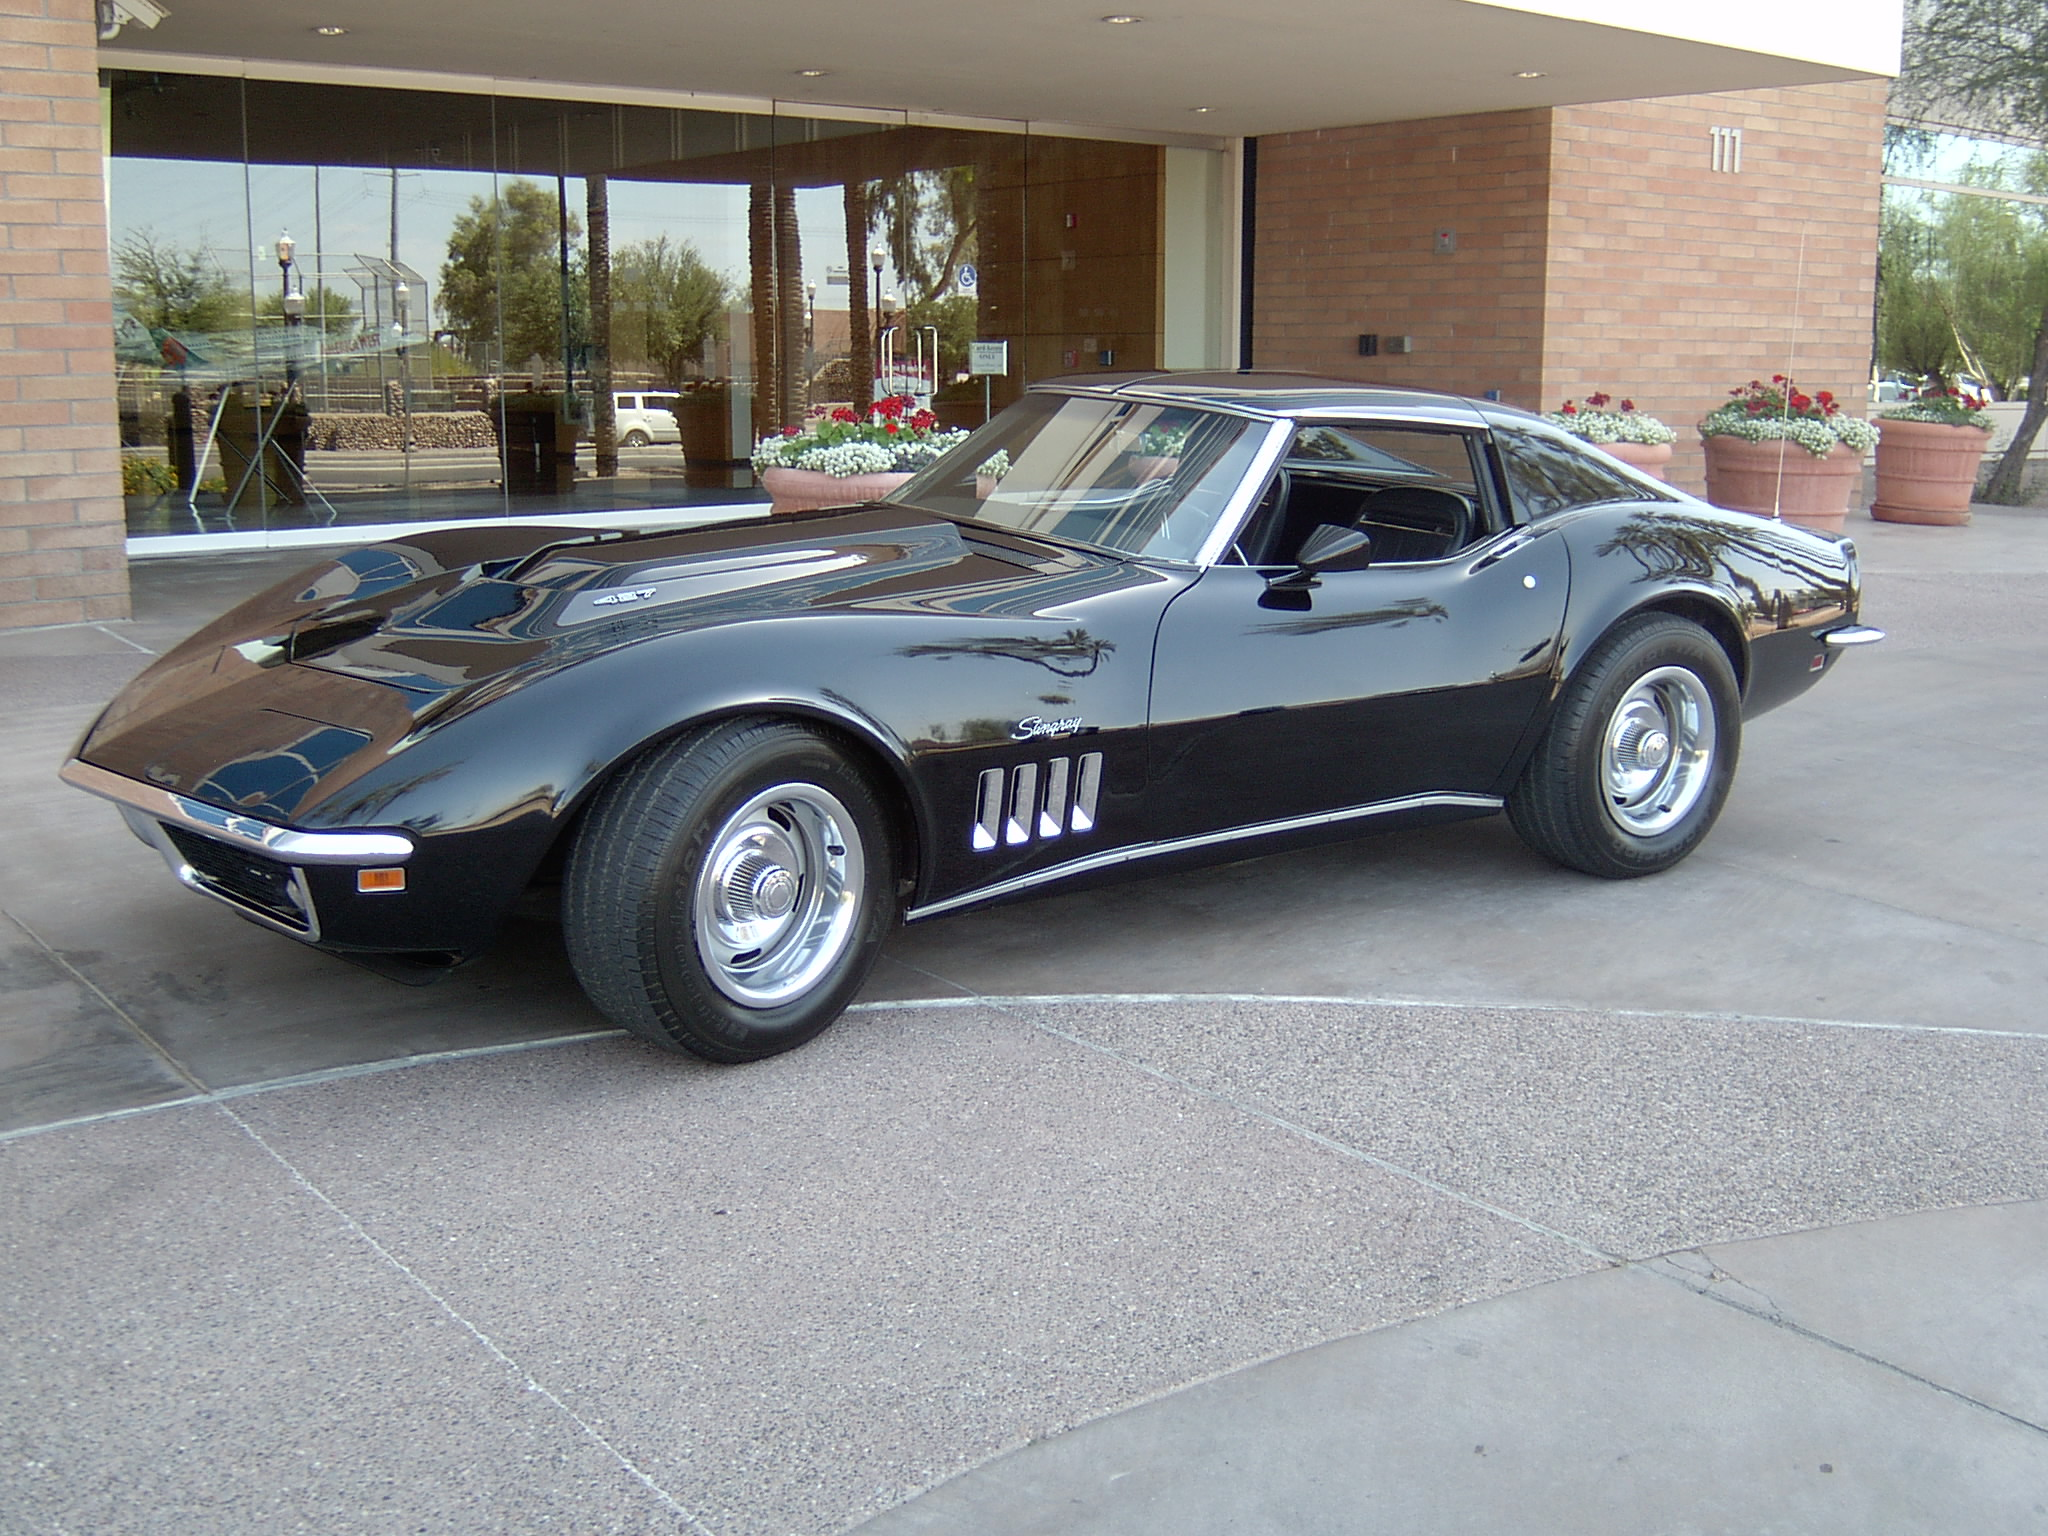 stingray 37 500 make chevrolet model corvette stingray year 1969. Cars Review. Best American Auto & Cars Review